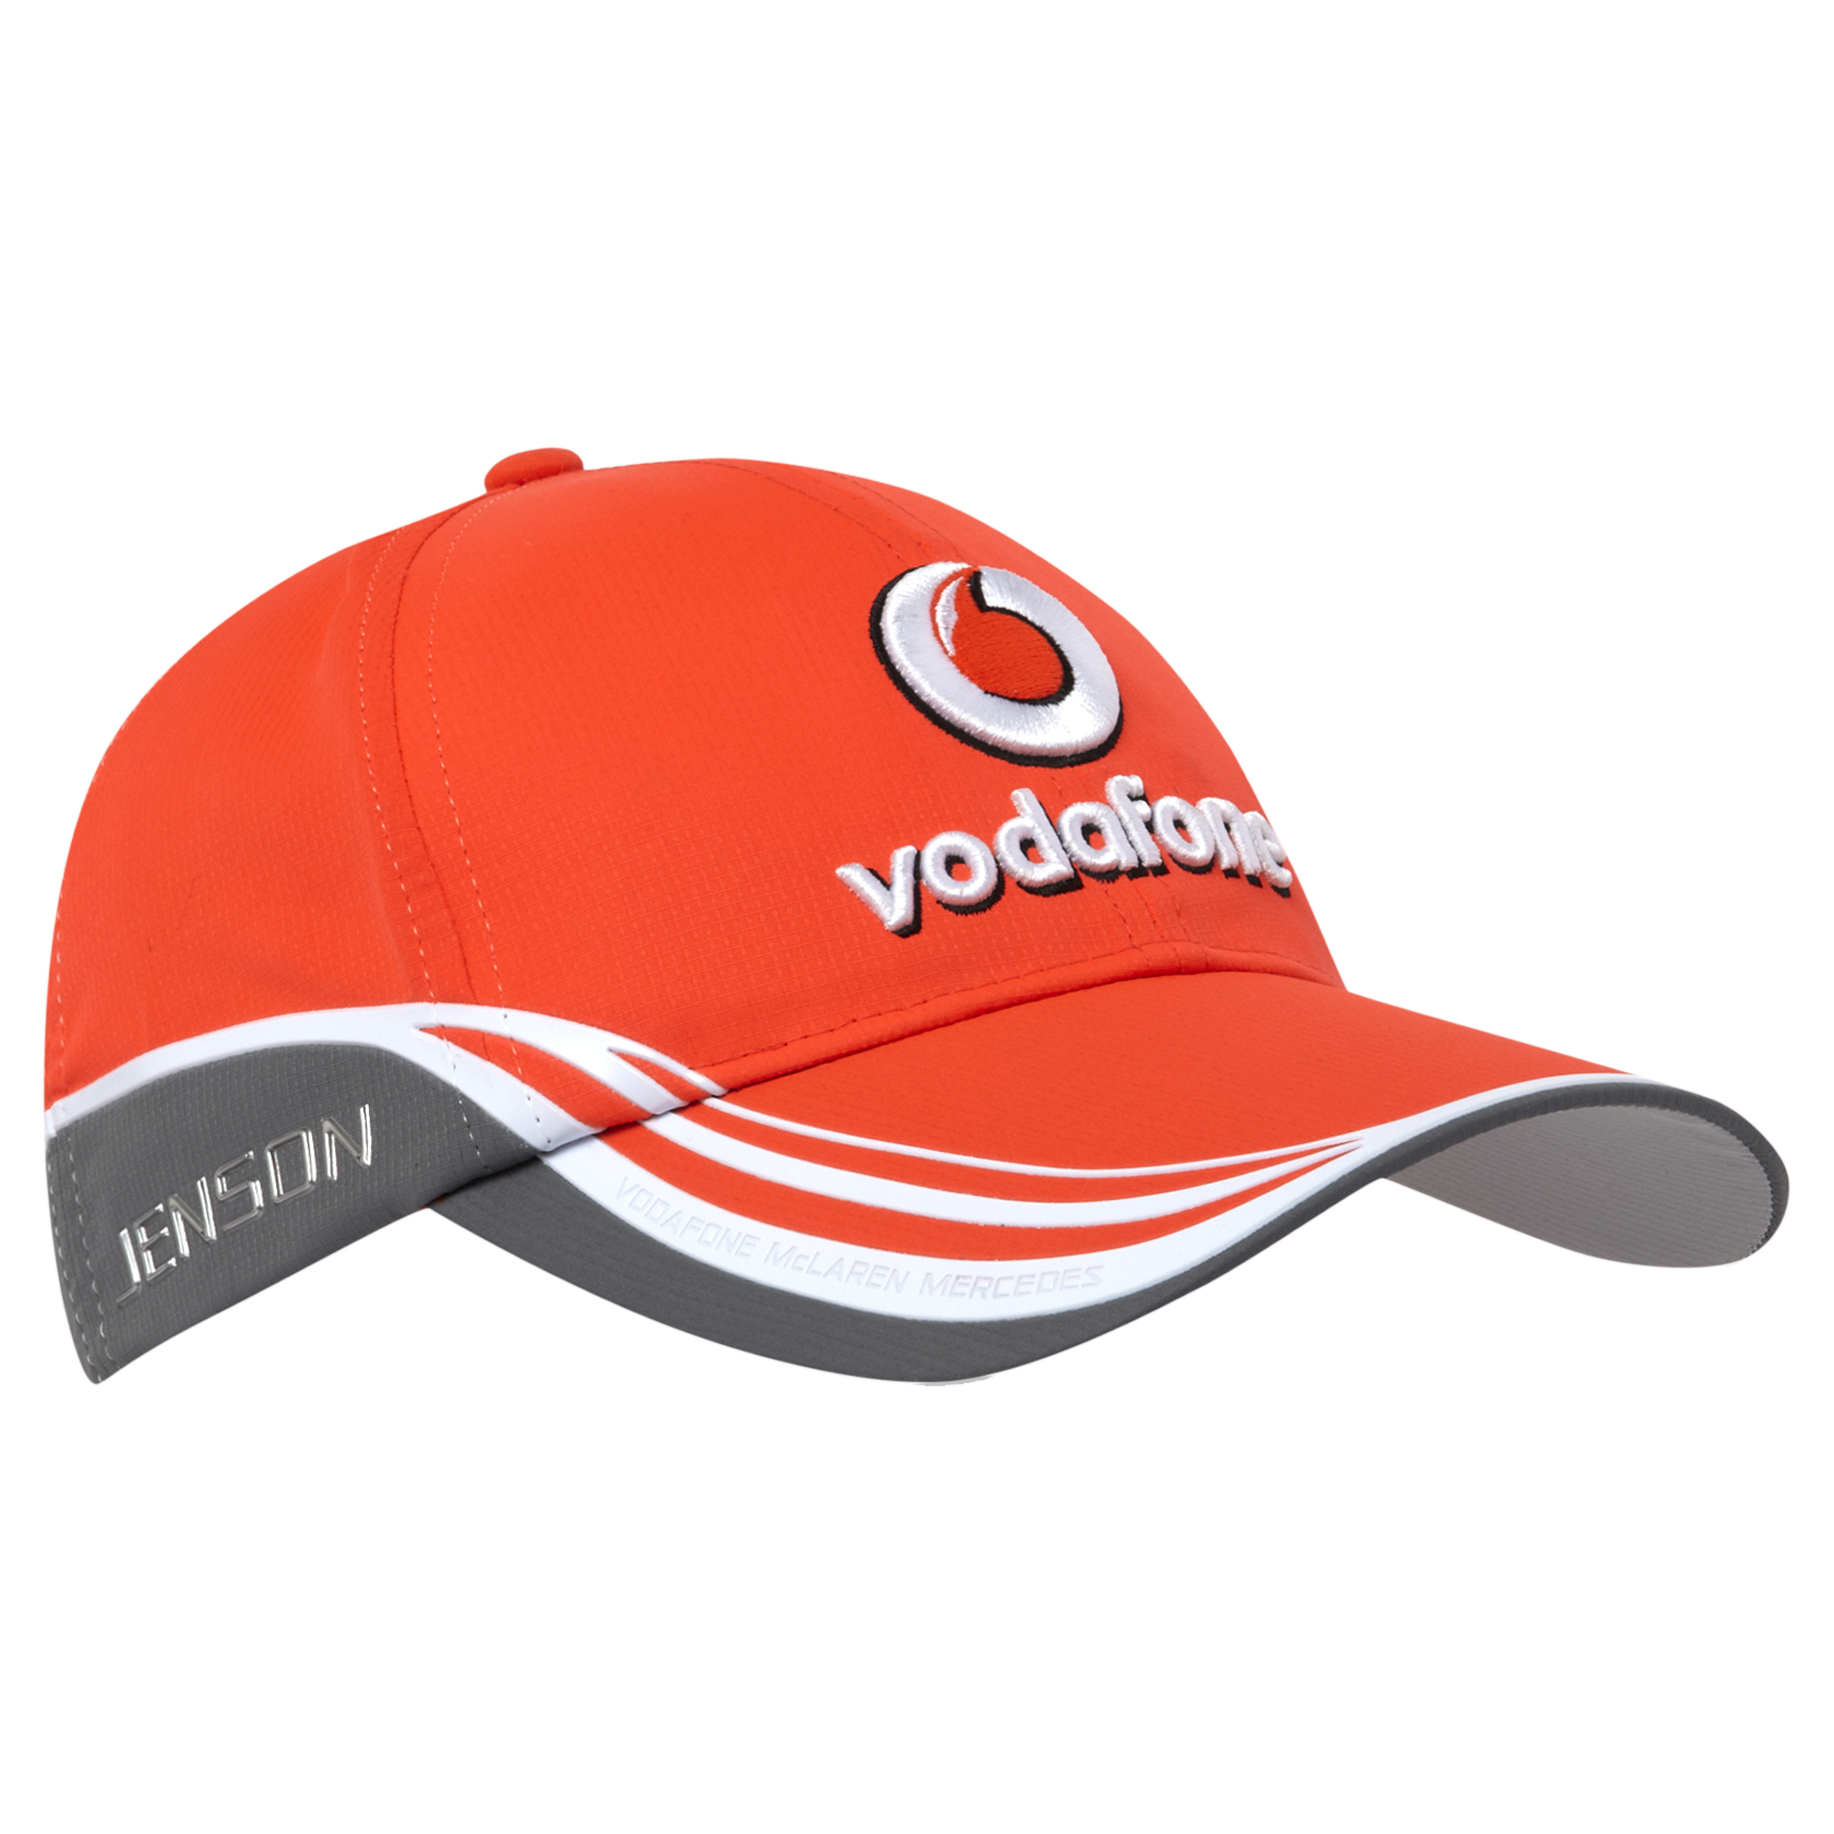 Vodafone McLaren Mercedes 2013 Jenson Drivers Team Cap